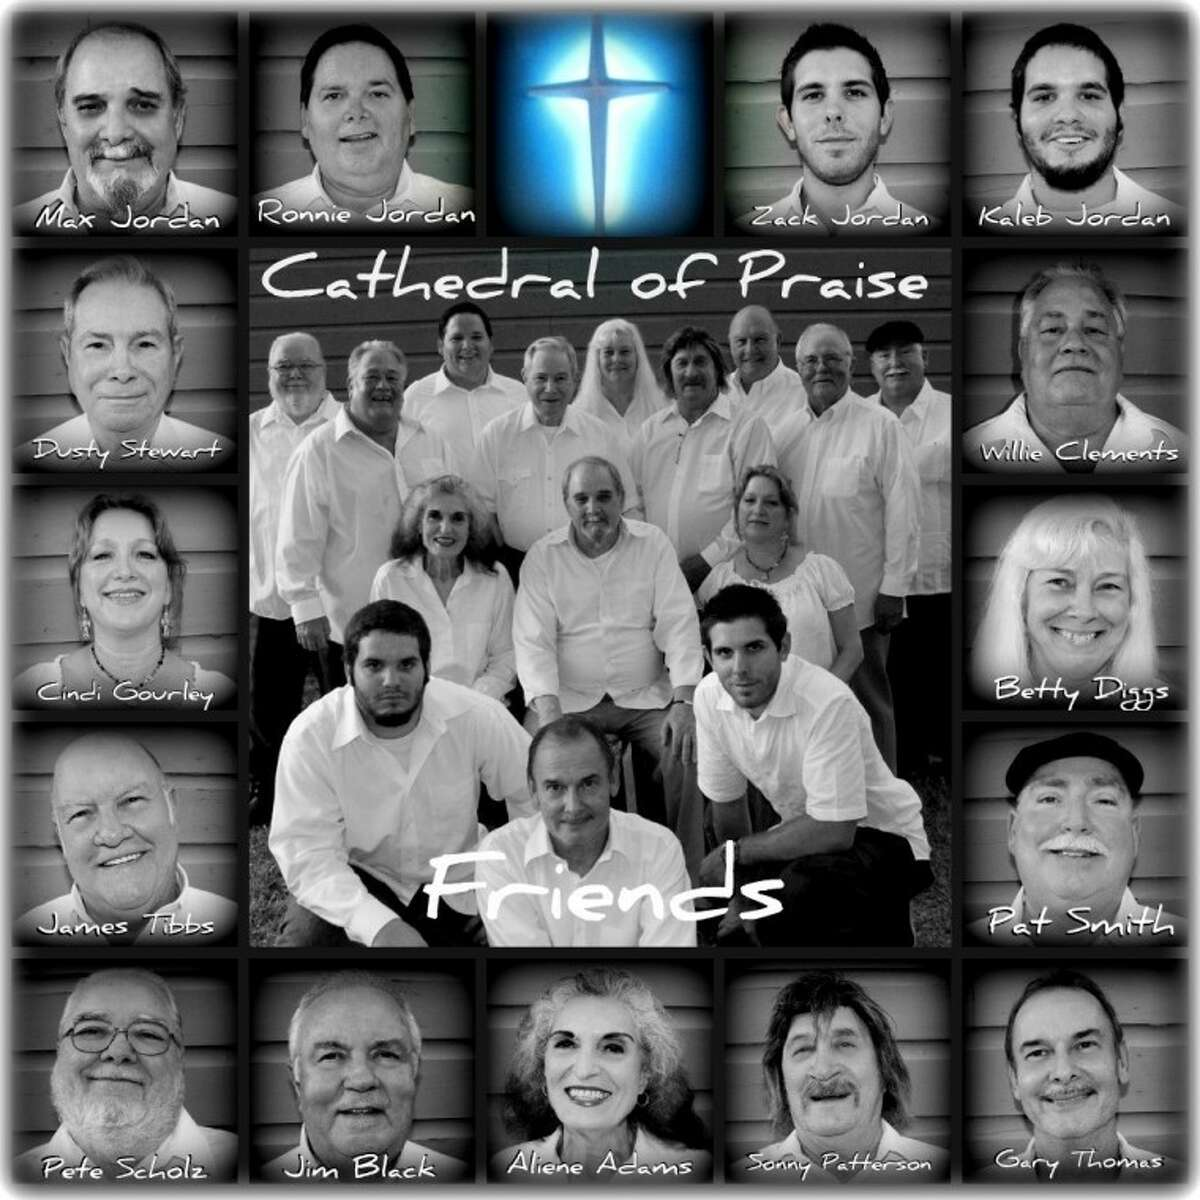 Pasadena Police Sgt. Ronnie Jordan has recorded a CD featuring members of his family, church congregation titled, Cathedral of Praise: Friends. The CD is a collection of original and traditional country-gospel songs. It is available online.